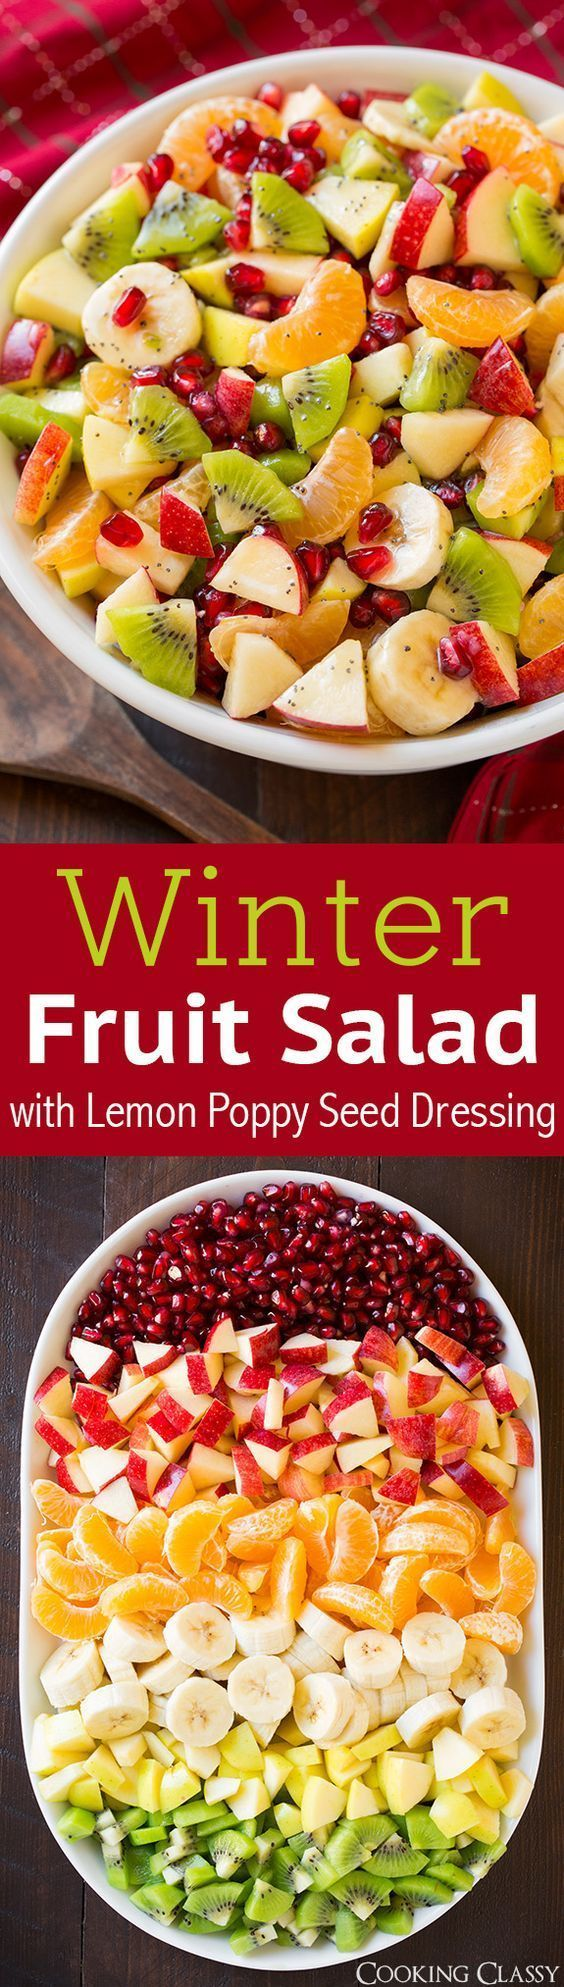 Winter Fruit Salad with Lemon Poppy Seed Dressing - SO GOOD I made it two days in a row! Perfect colors for the holidays. Everyone loved it! (Holiday Sweet Recipes)